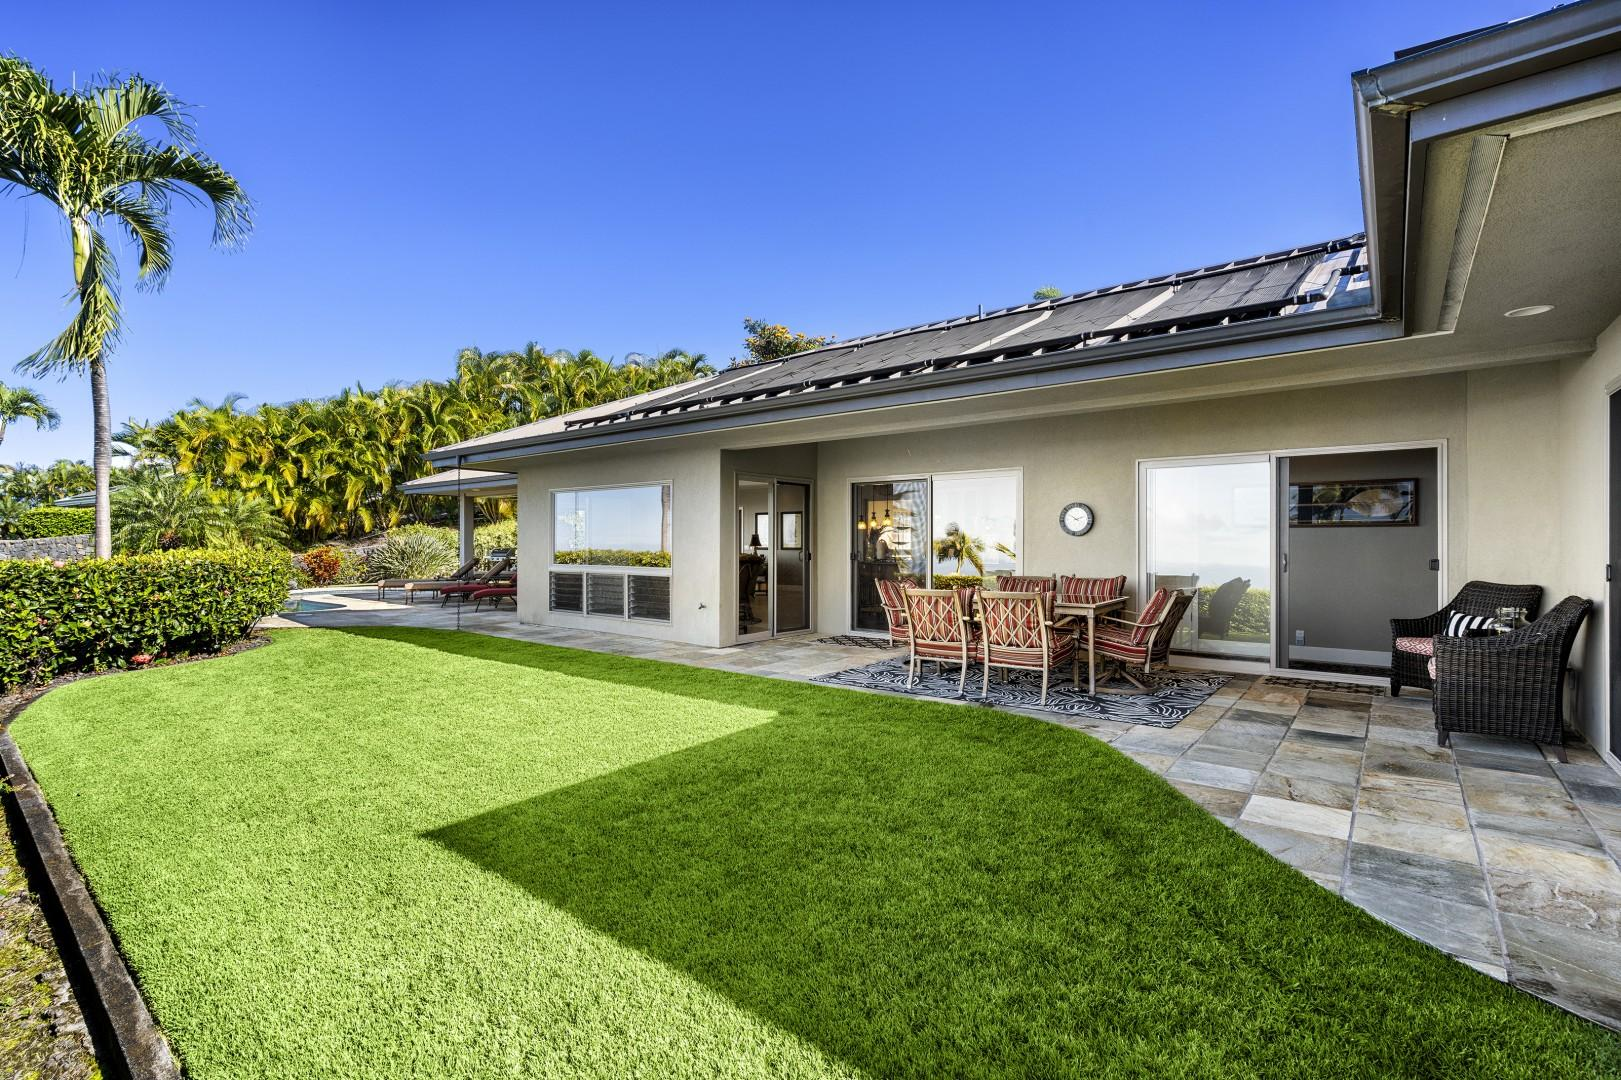 Small lawn for adults and kids to enjoy outdoor activities!